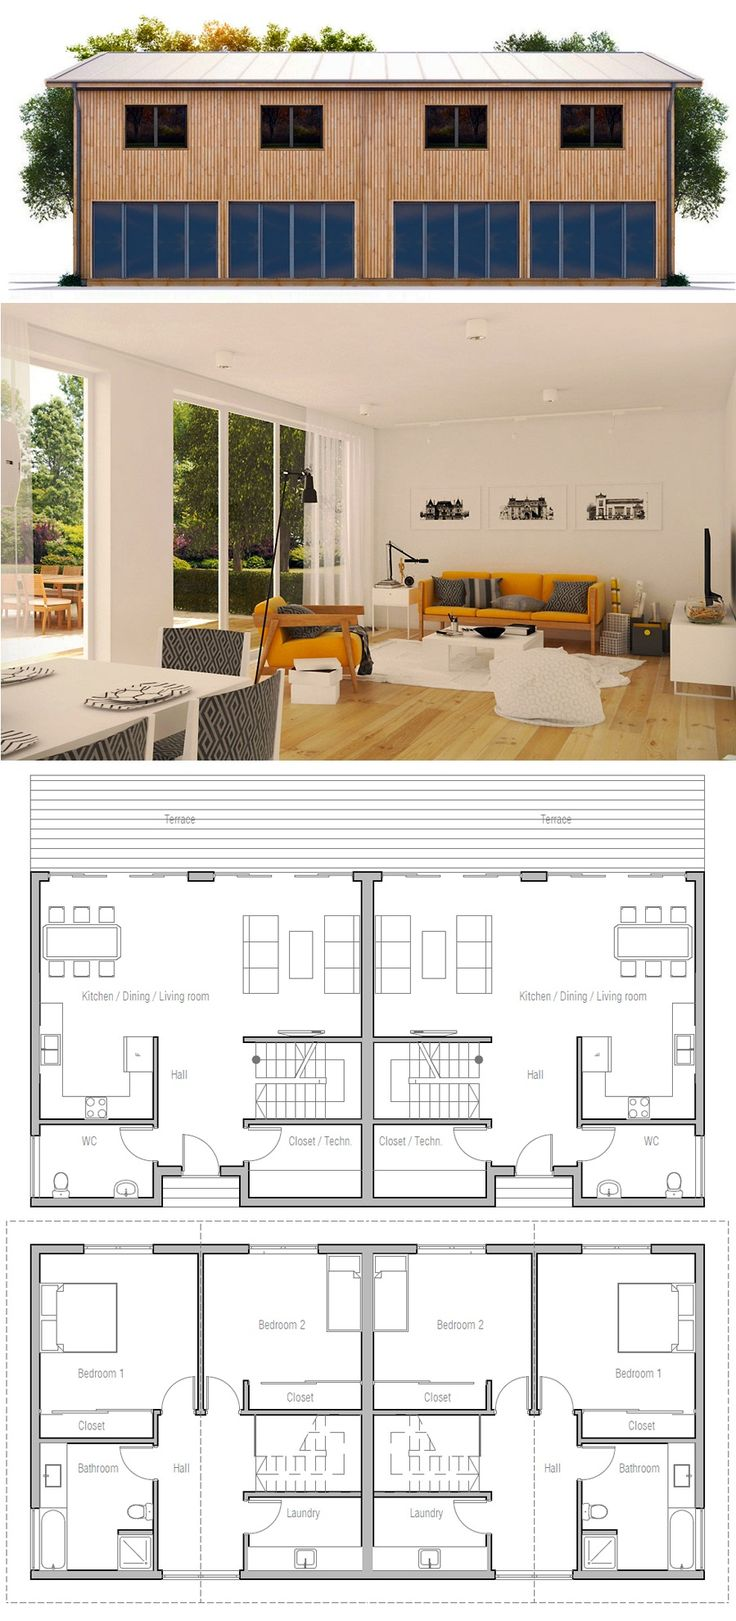 Maison duplex plan ventana blog for Maison duplex plan